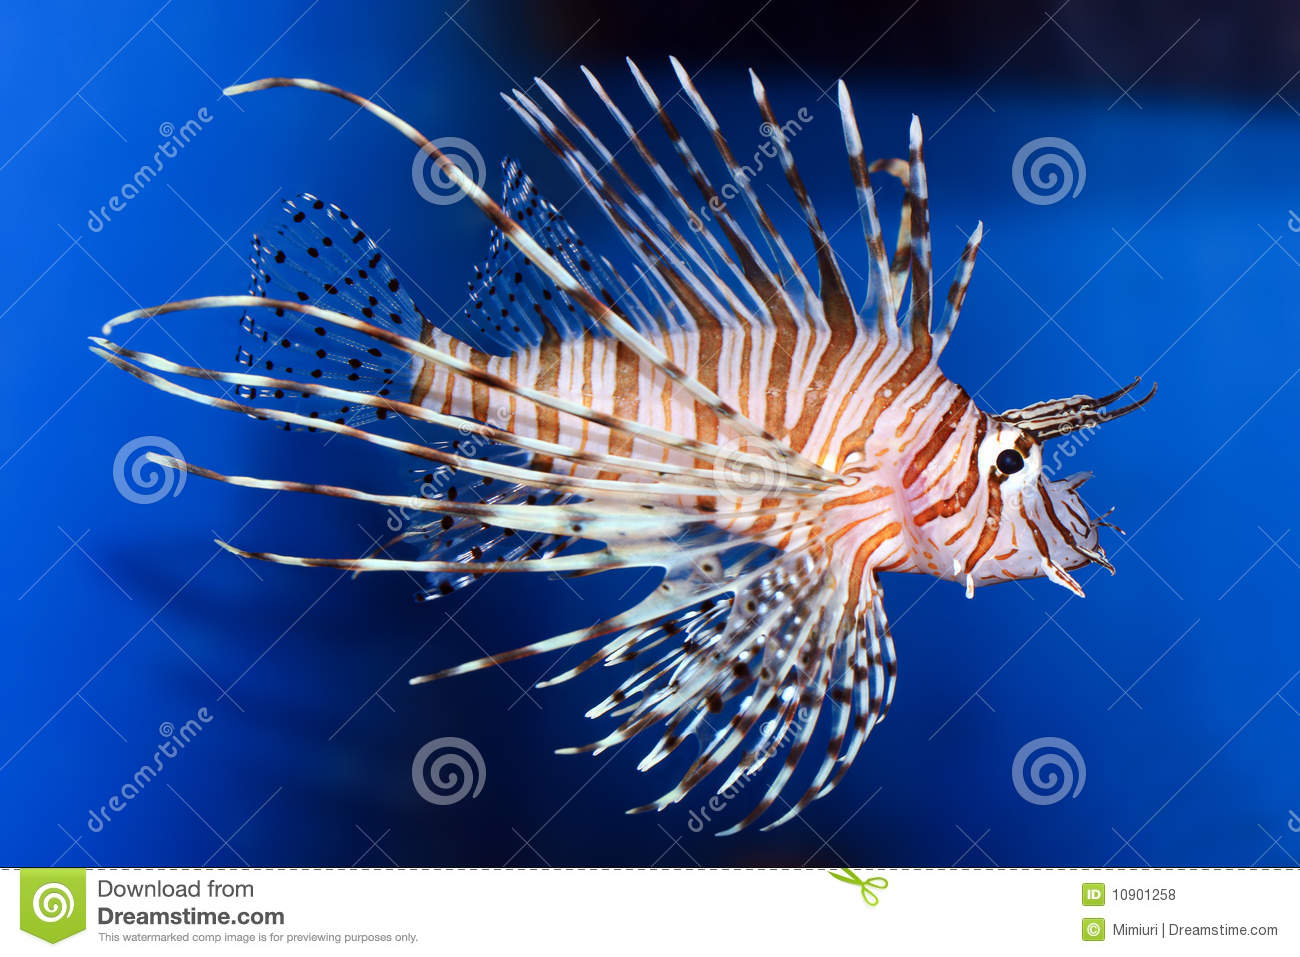 Strange Fish Royalty Free Stock Photos - Image: 10901258